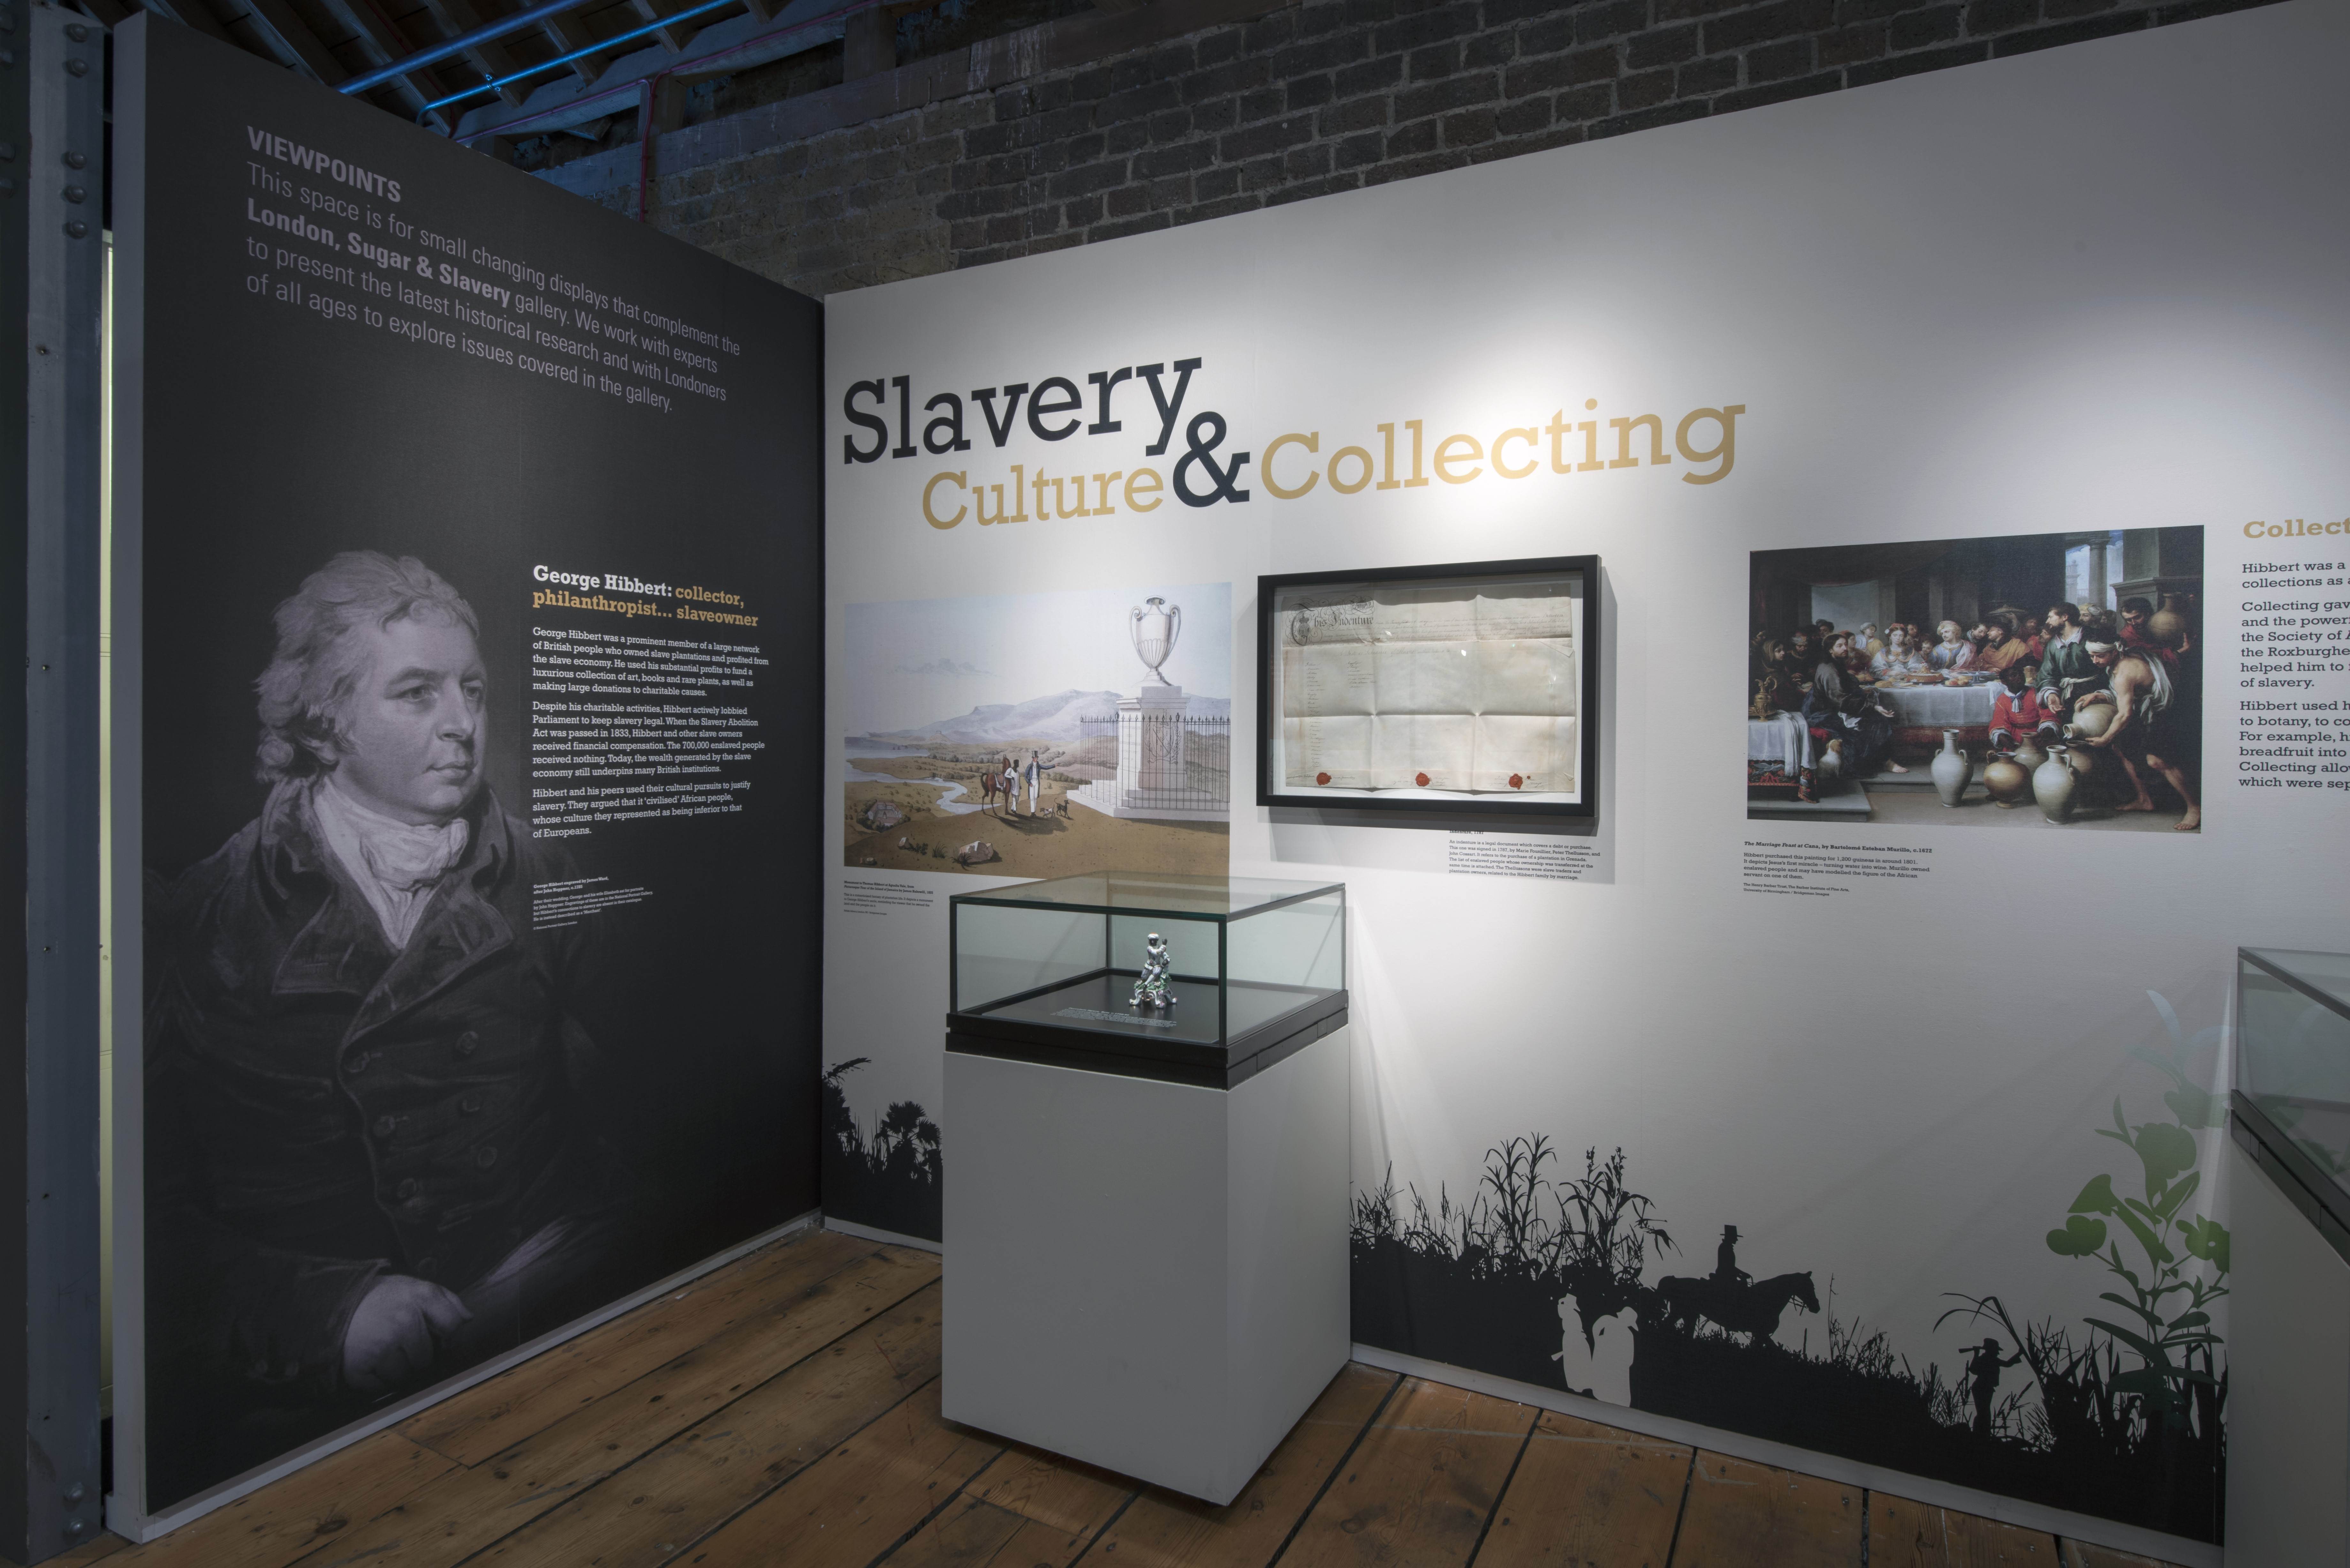 Slavery Culture and Collecting